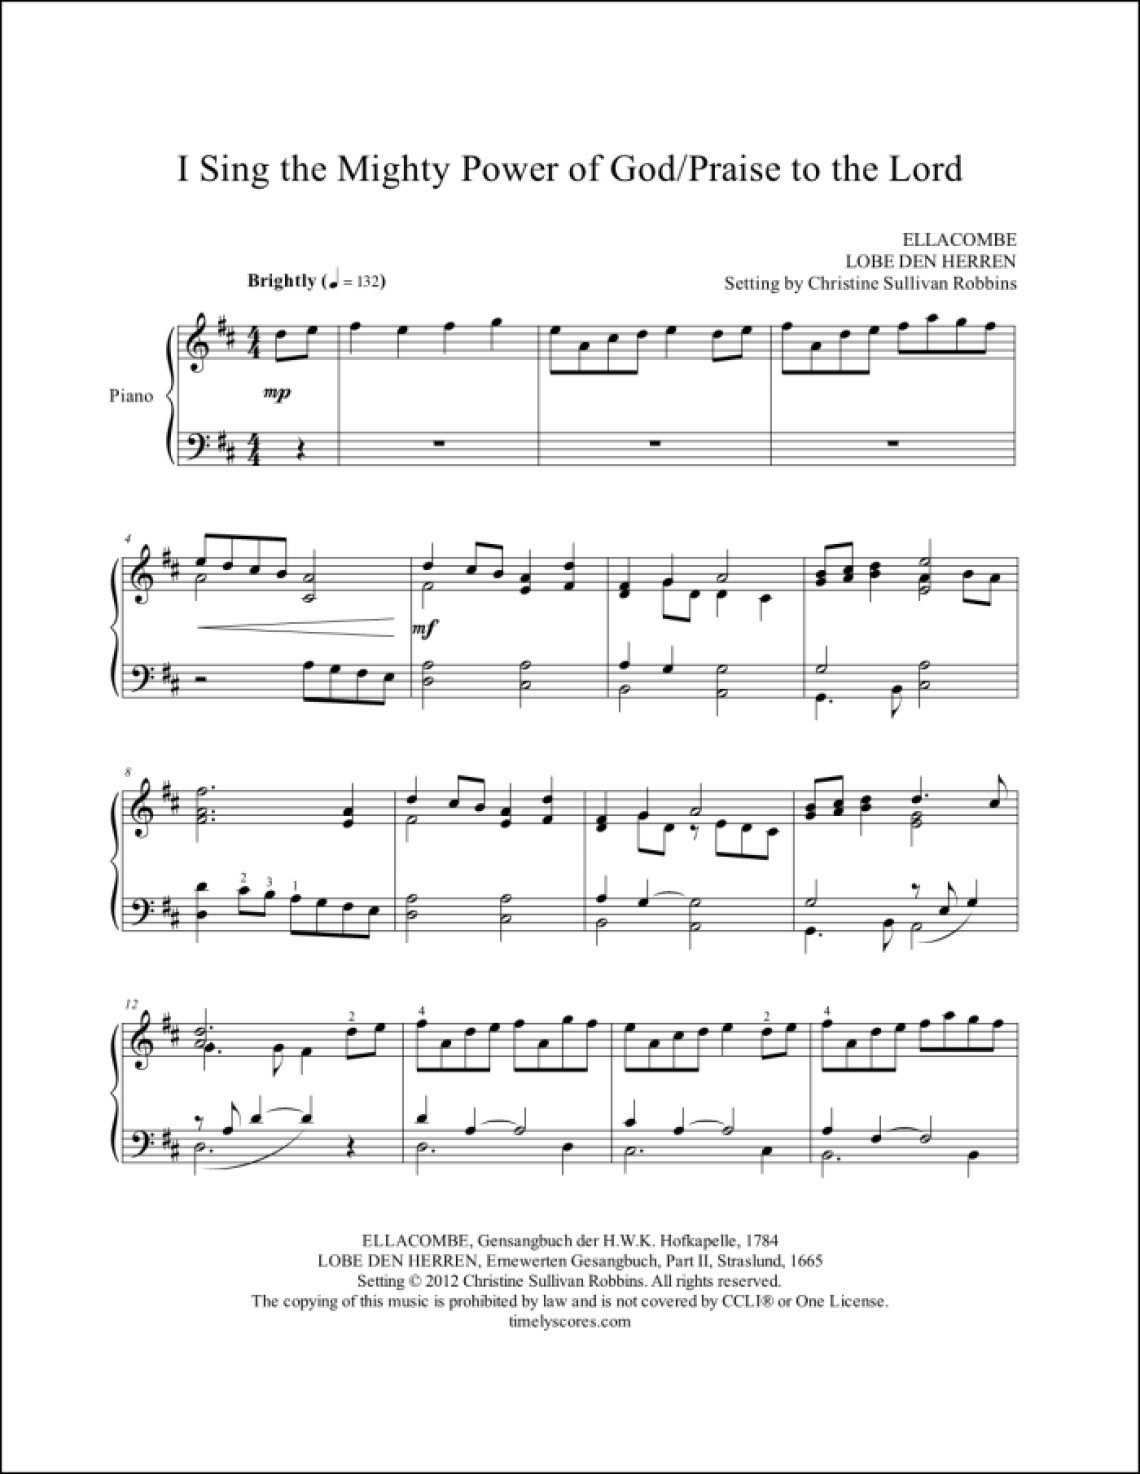 I Sing the Mighty Power of with God Praise to the Lord Piano Sheet Music